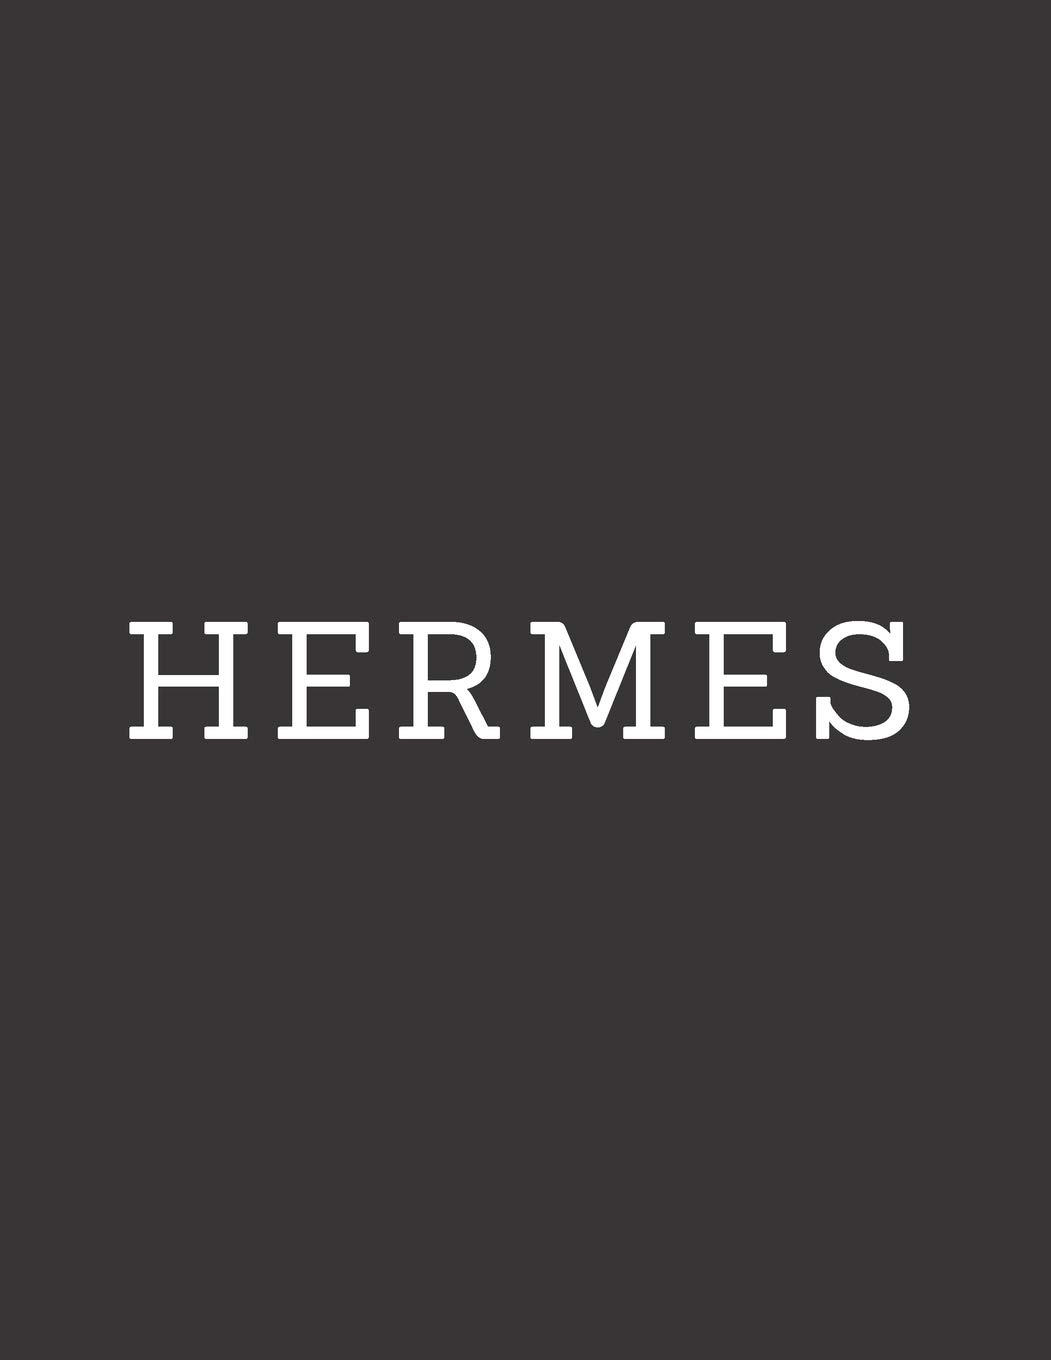 Hermes  A Decorative Book │ Perfect For Stacking On Coffee Tables And Bookshelves │ Customized Interior Design And Home Decor  Designer Book Series   Black Band 23